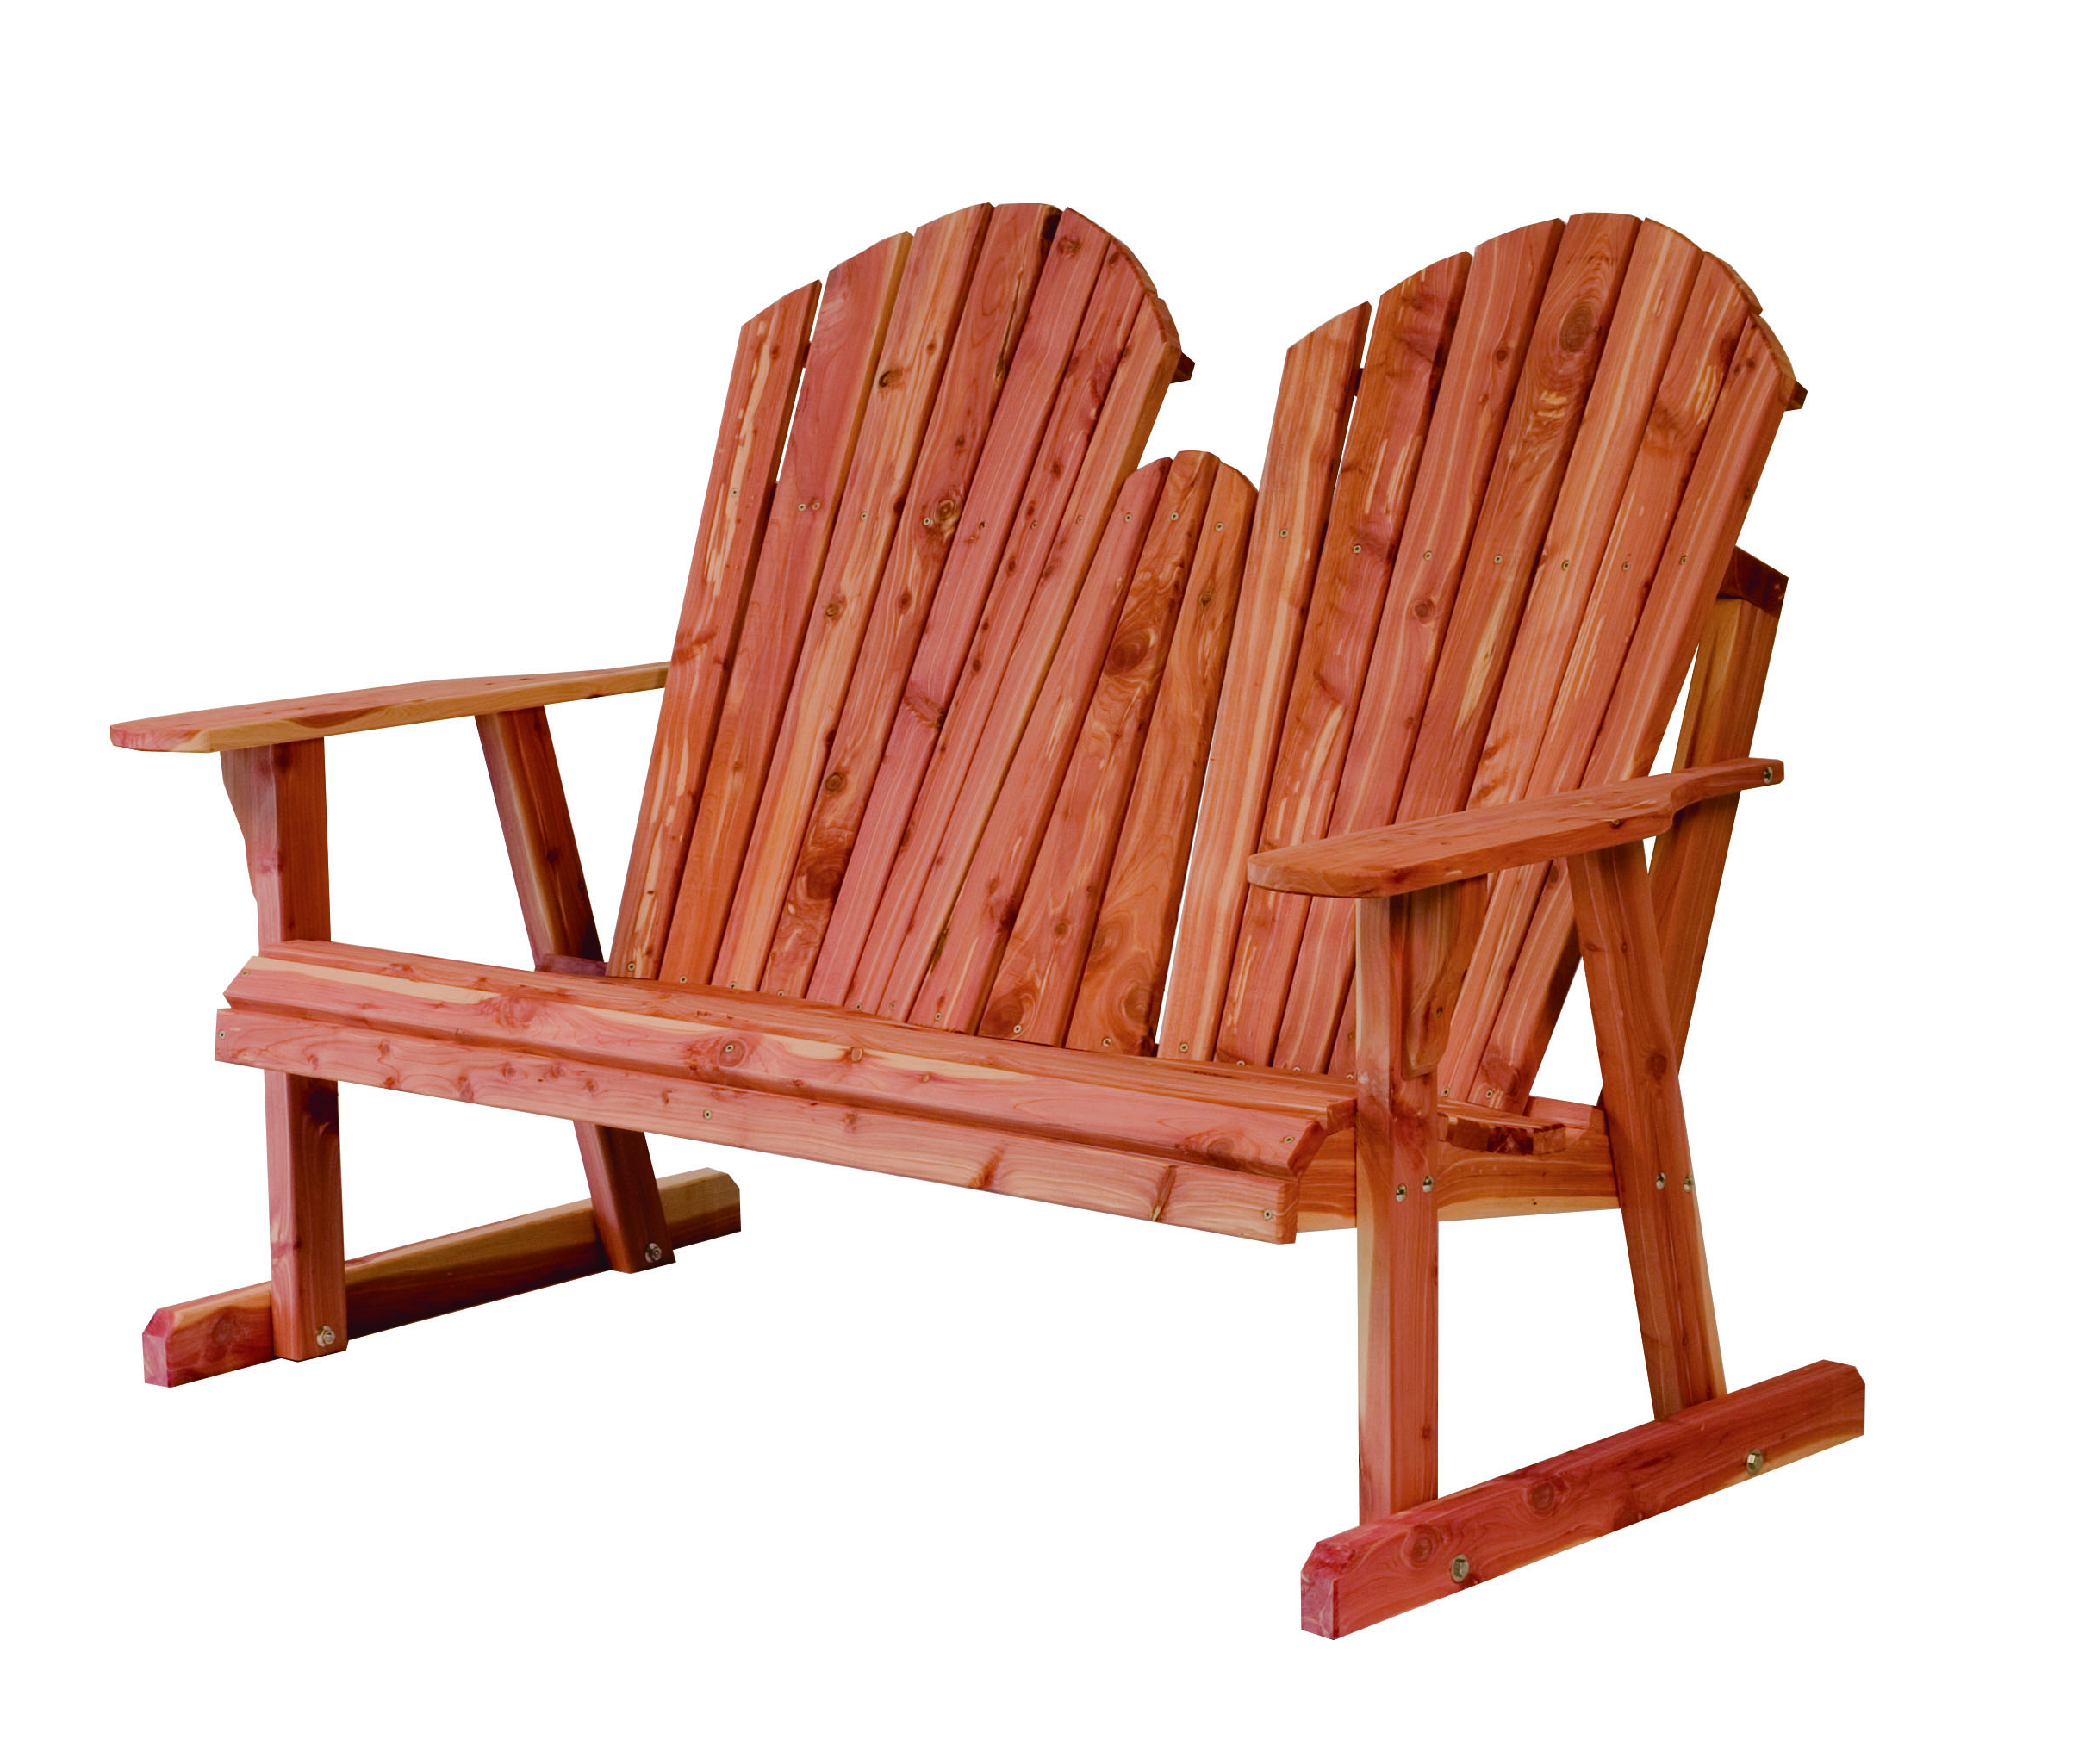 Fashionable Rustic Red Cedar Furniture – Sturgeon River Pottery Throughout Low Back Glider Benches (View 27 of 30)